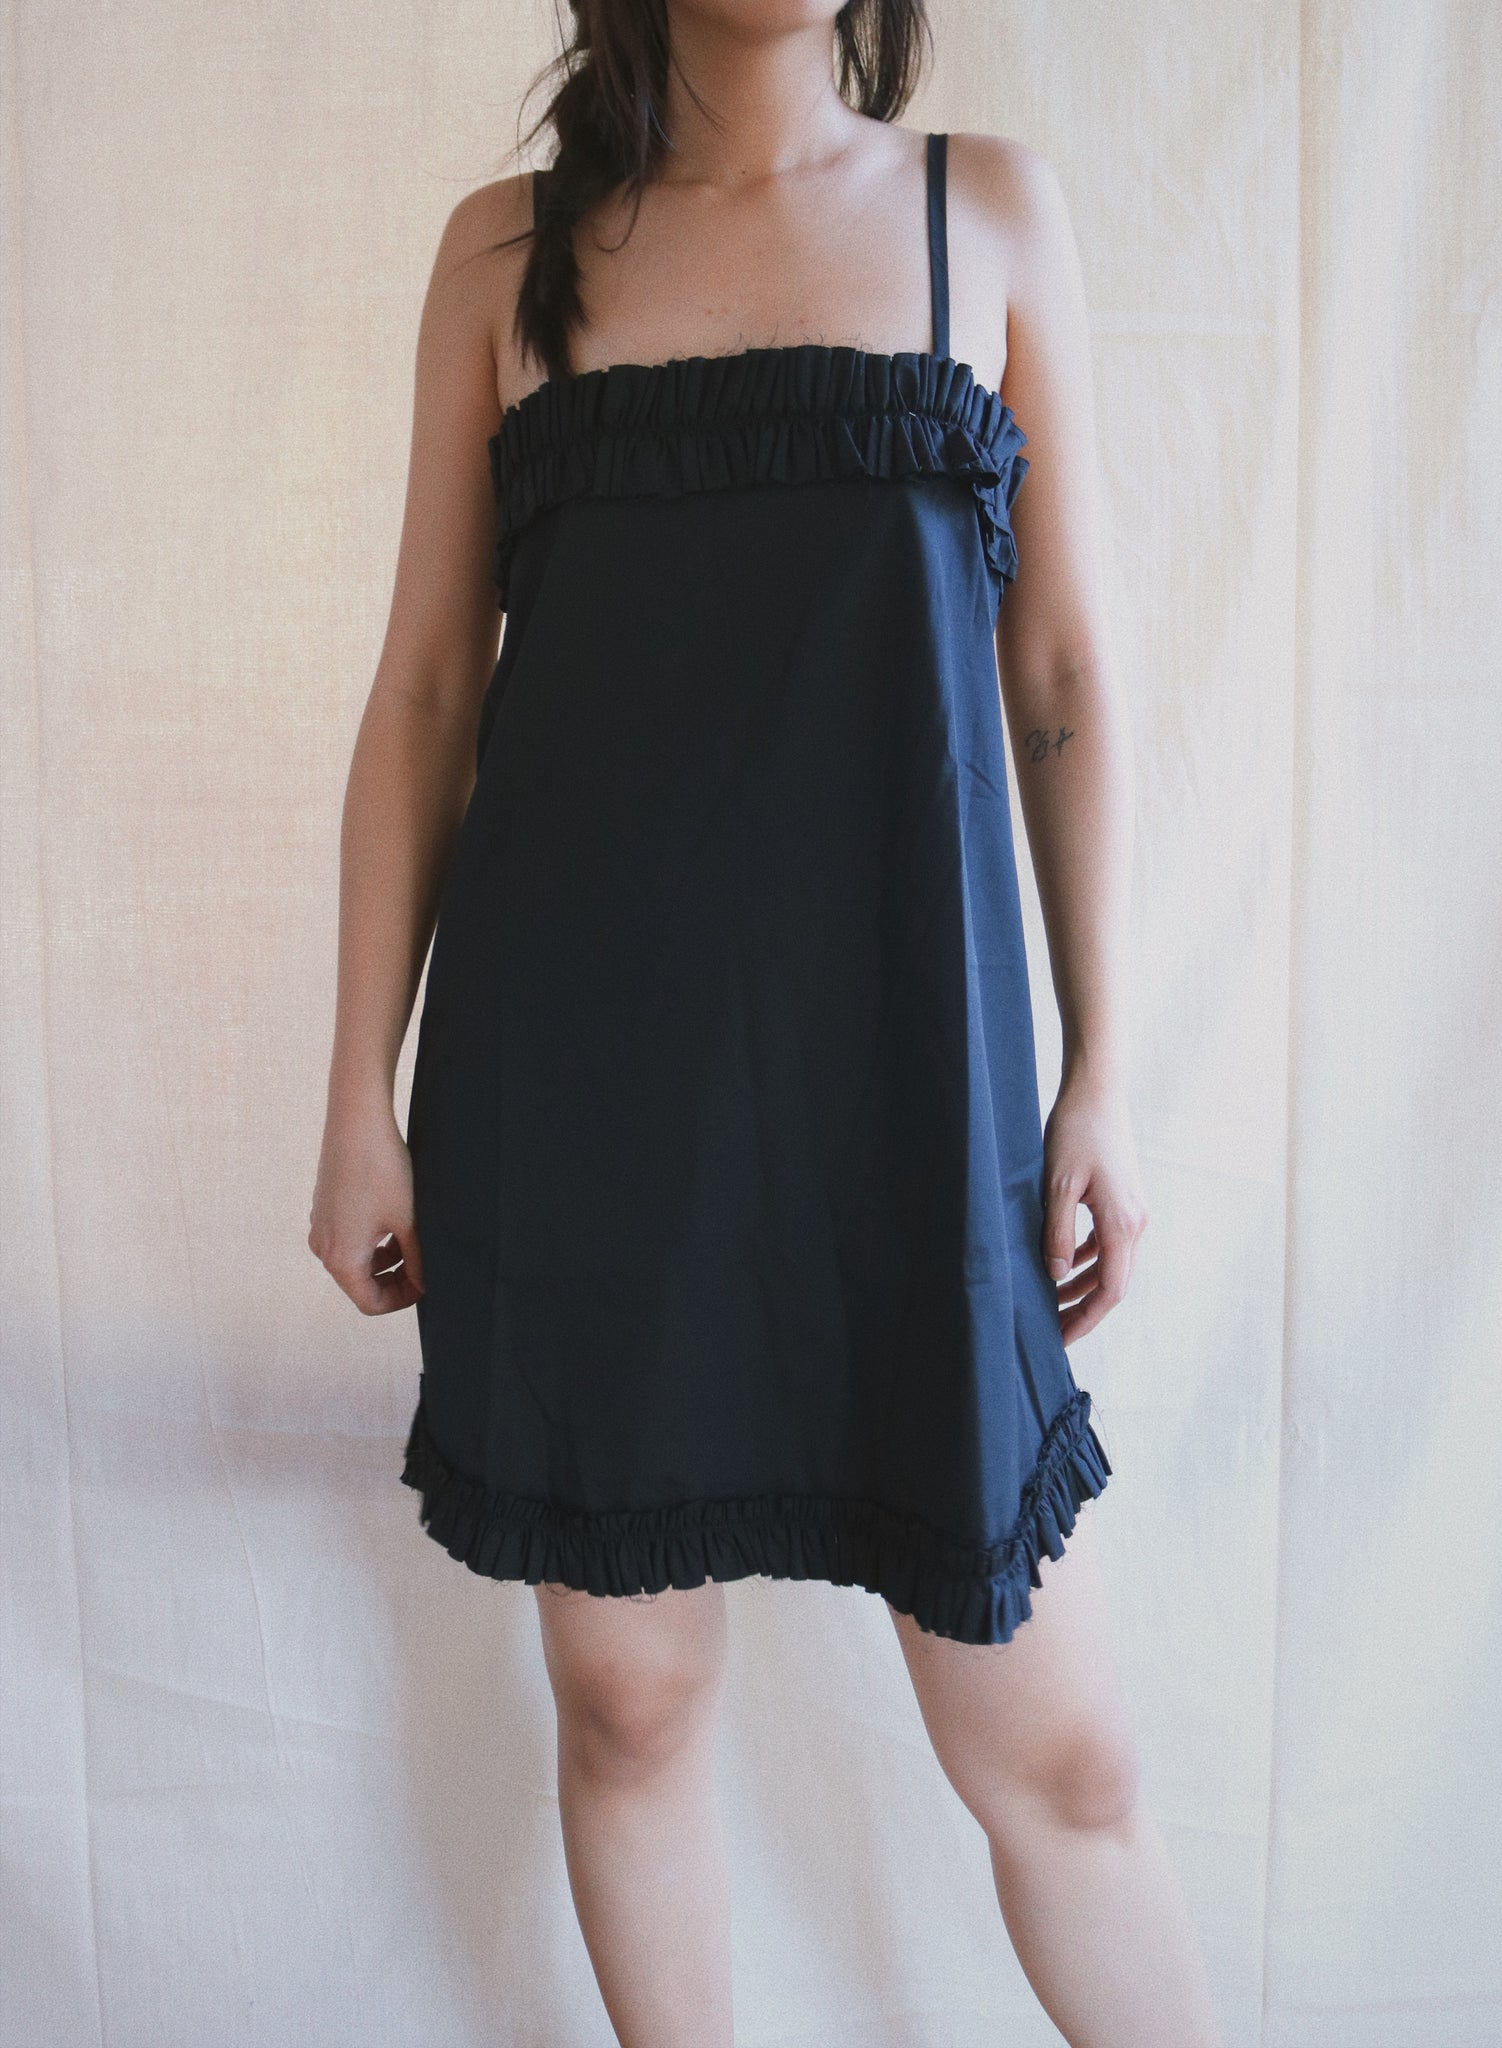 Mimi Dress in black sample